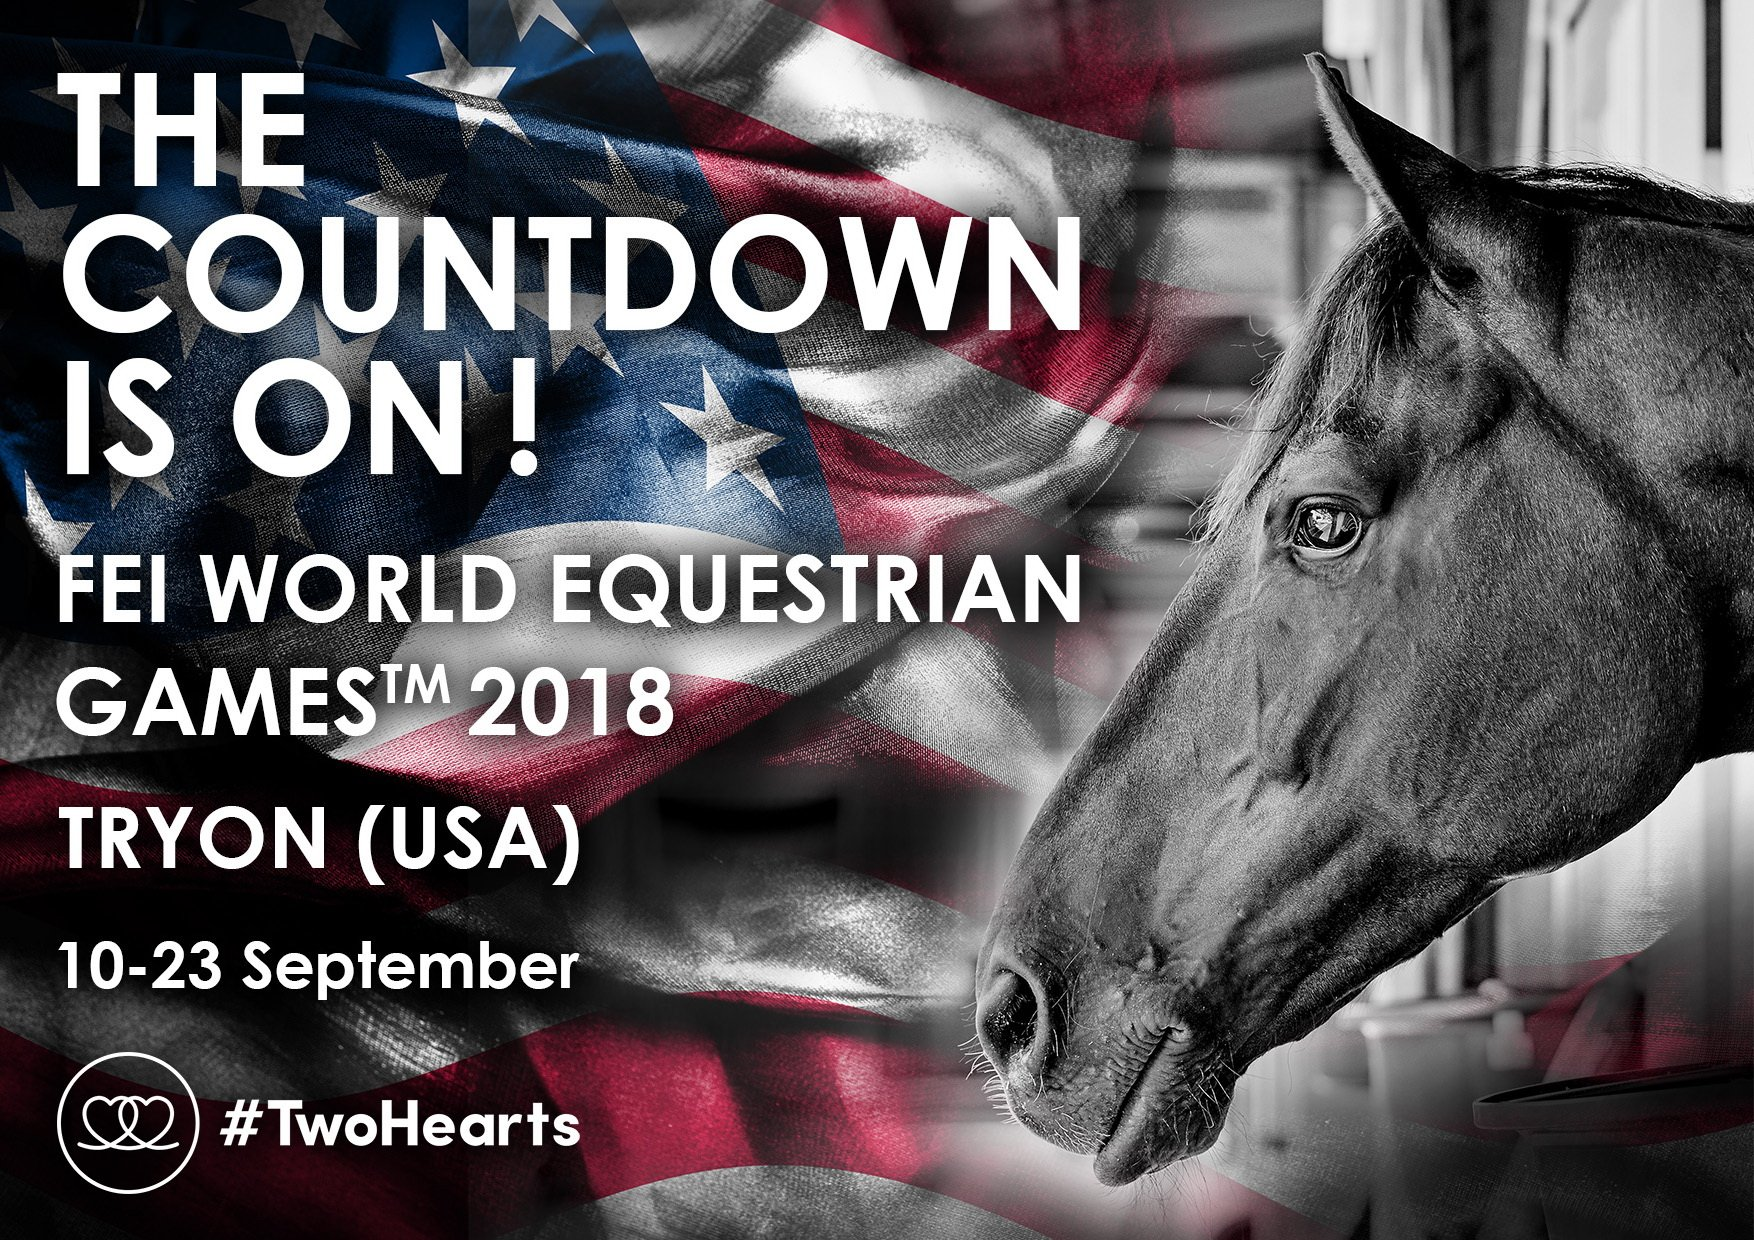 Horse Times Egypt: Equestrian Magazine :News :PRESS CONFERENCE AND ANNOUNCEMENTS FOR FEI WORLD EQUESTRIAN GAMES™ TRYON 2018